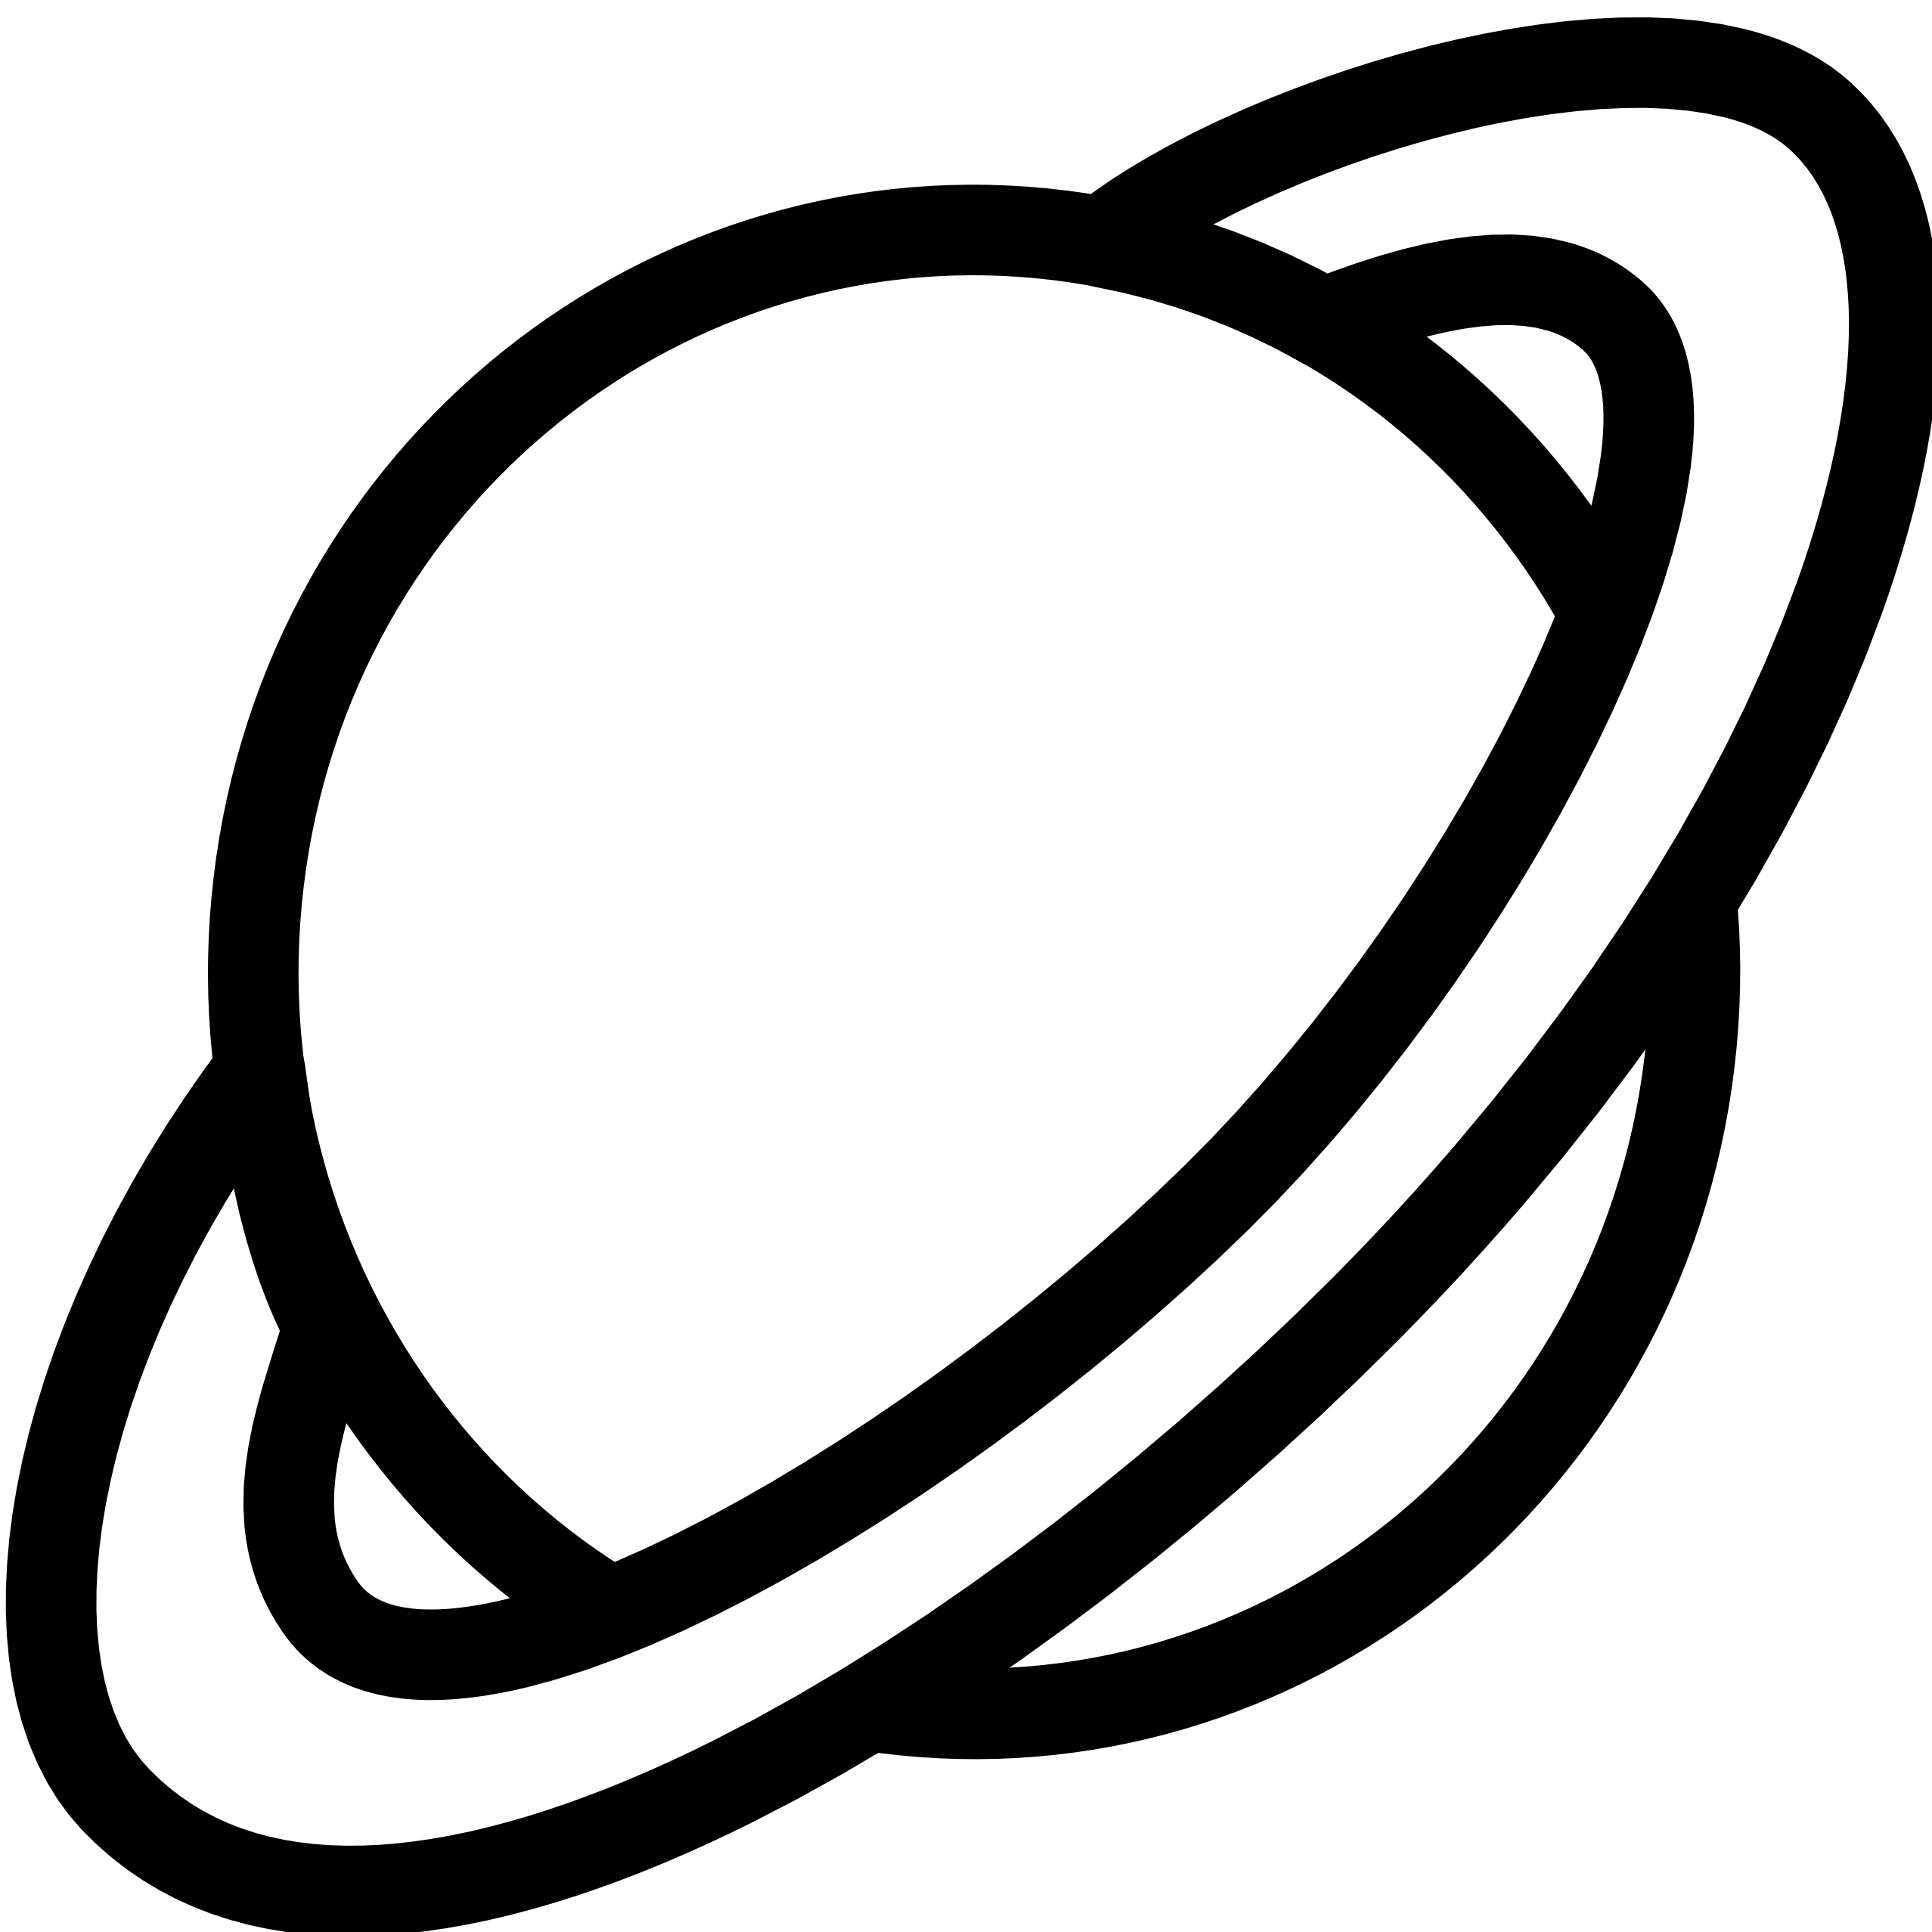 Free Saturn Cliparts, Download Free Clip Art, Free Clip Art.